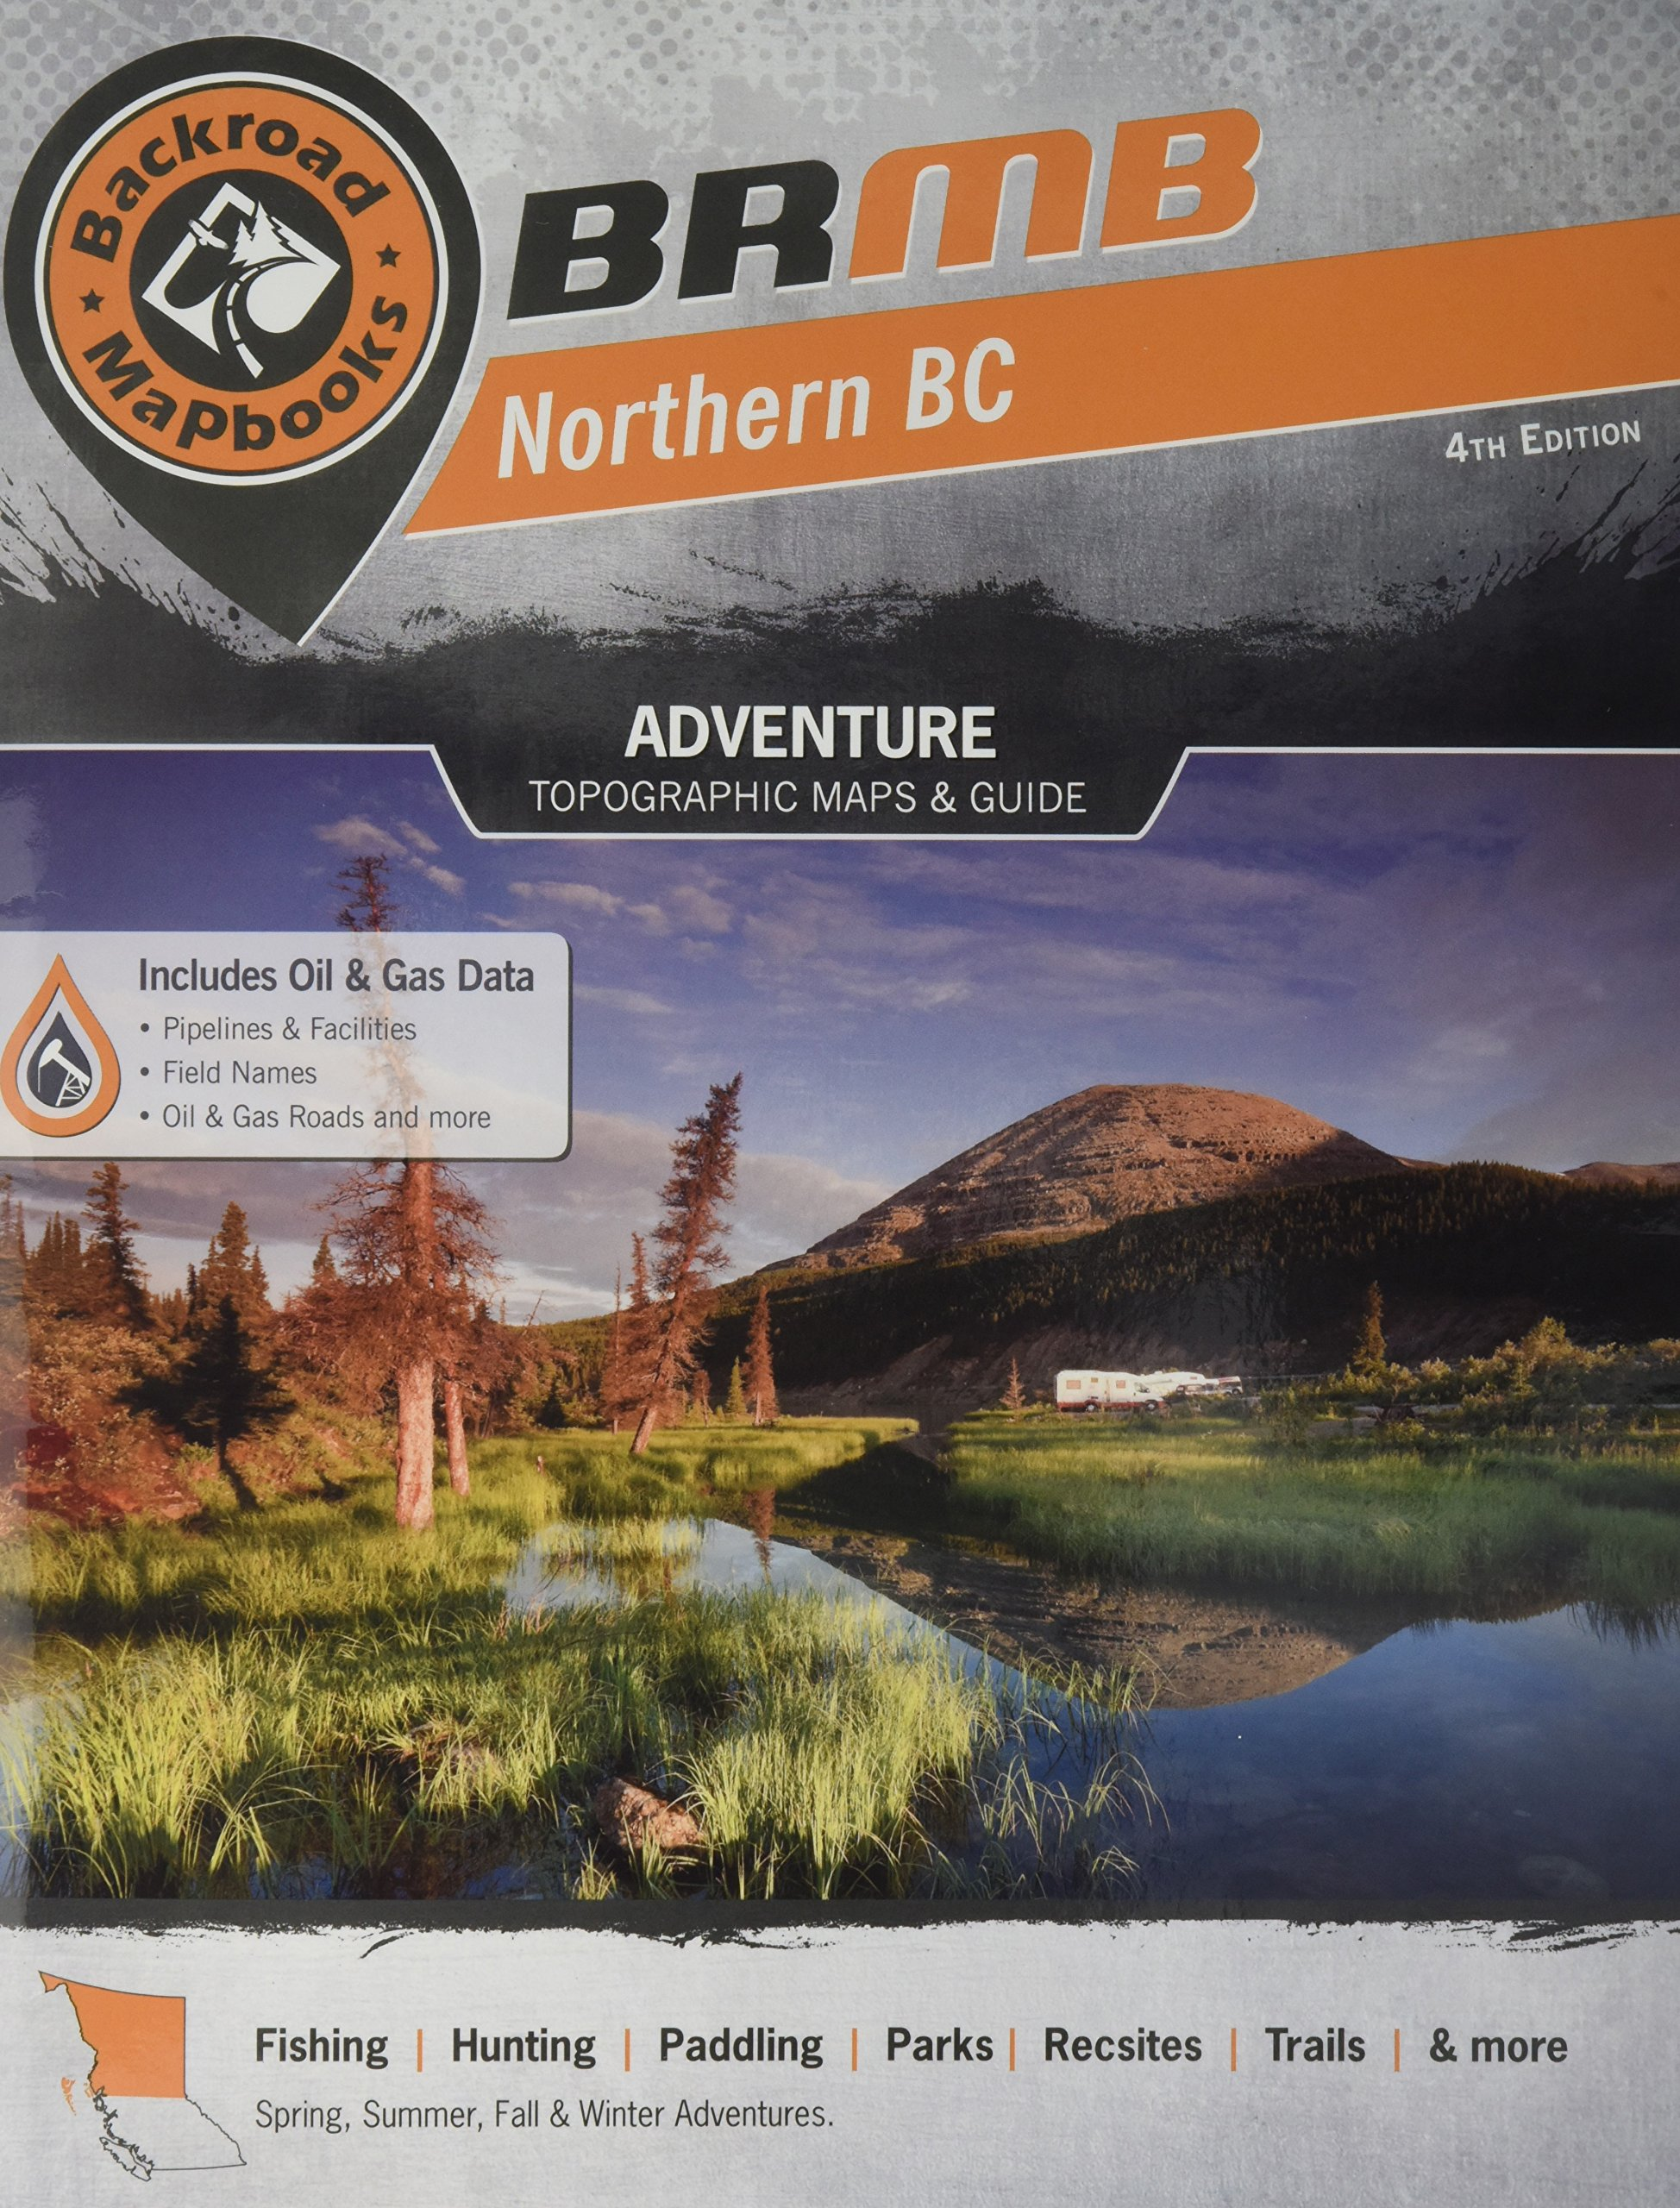 Northern bc backroad mapbooks russell wesley mussio mussio northern bc backroad mapbooks russell wesley mussio mussio ventures 9781926806334 amazon books fandeluxe Image collections